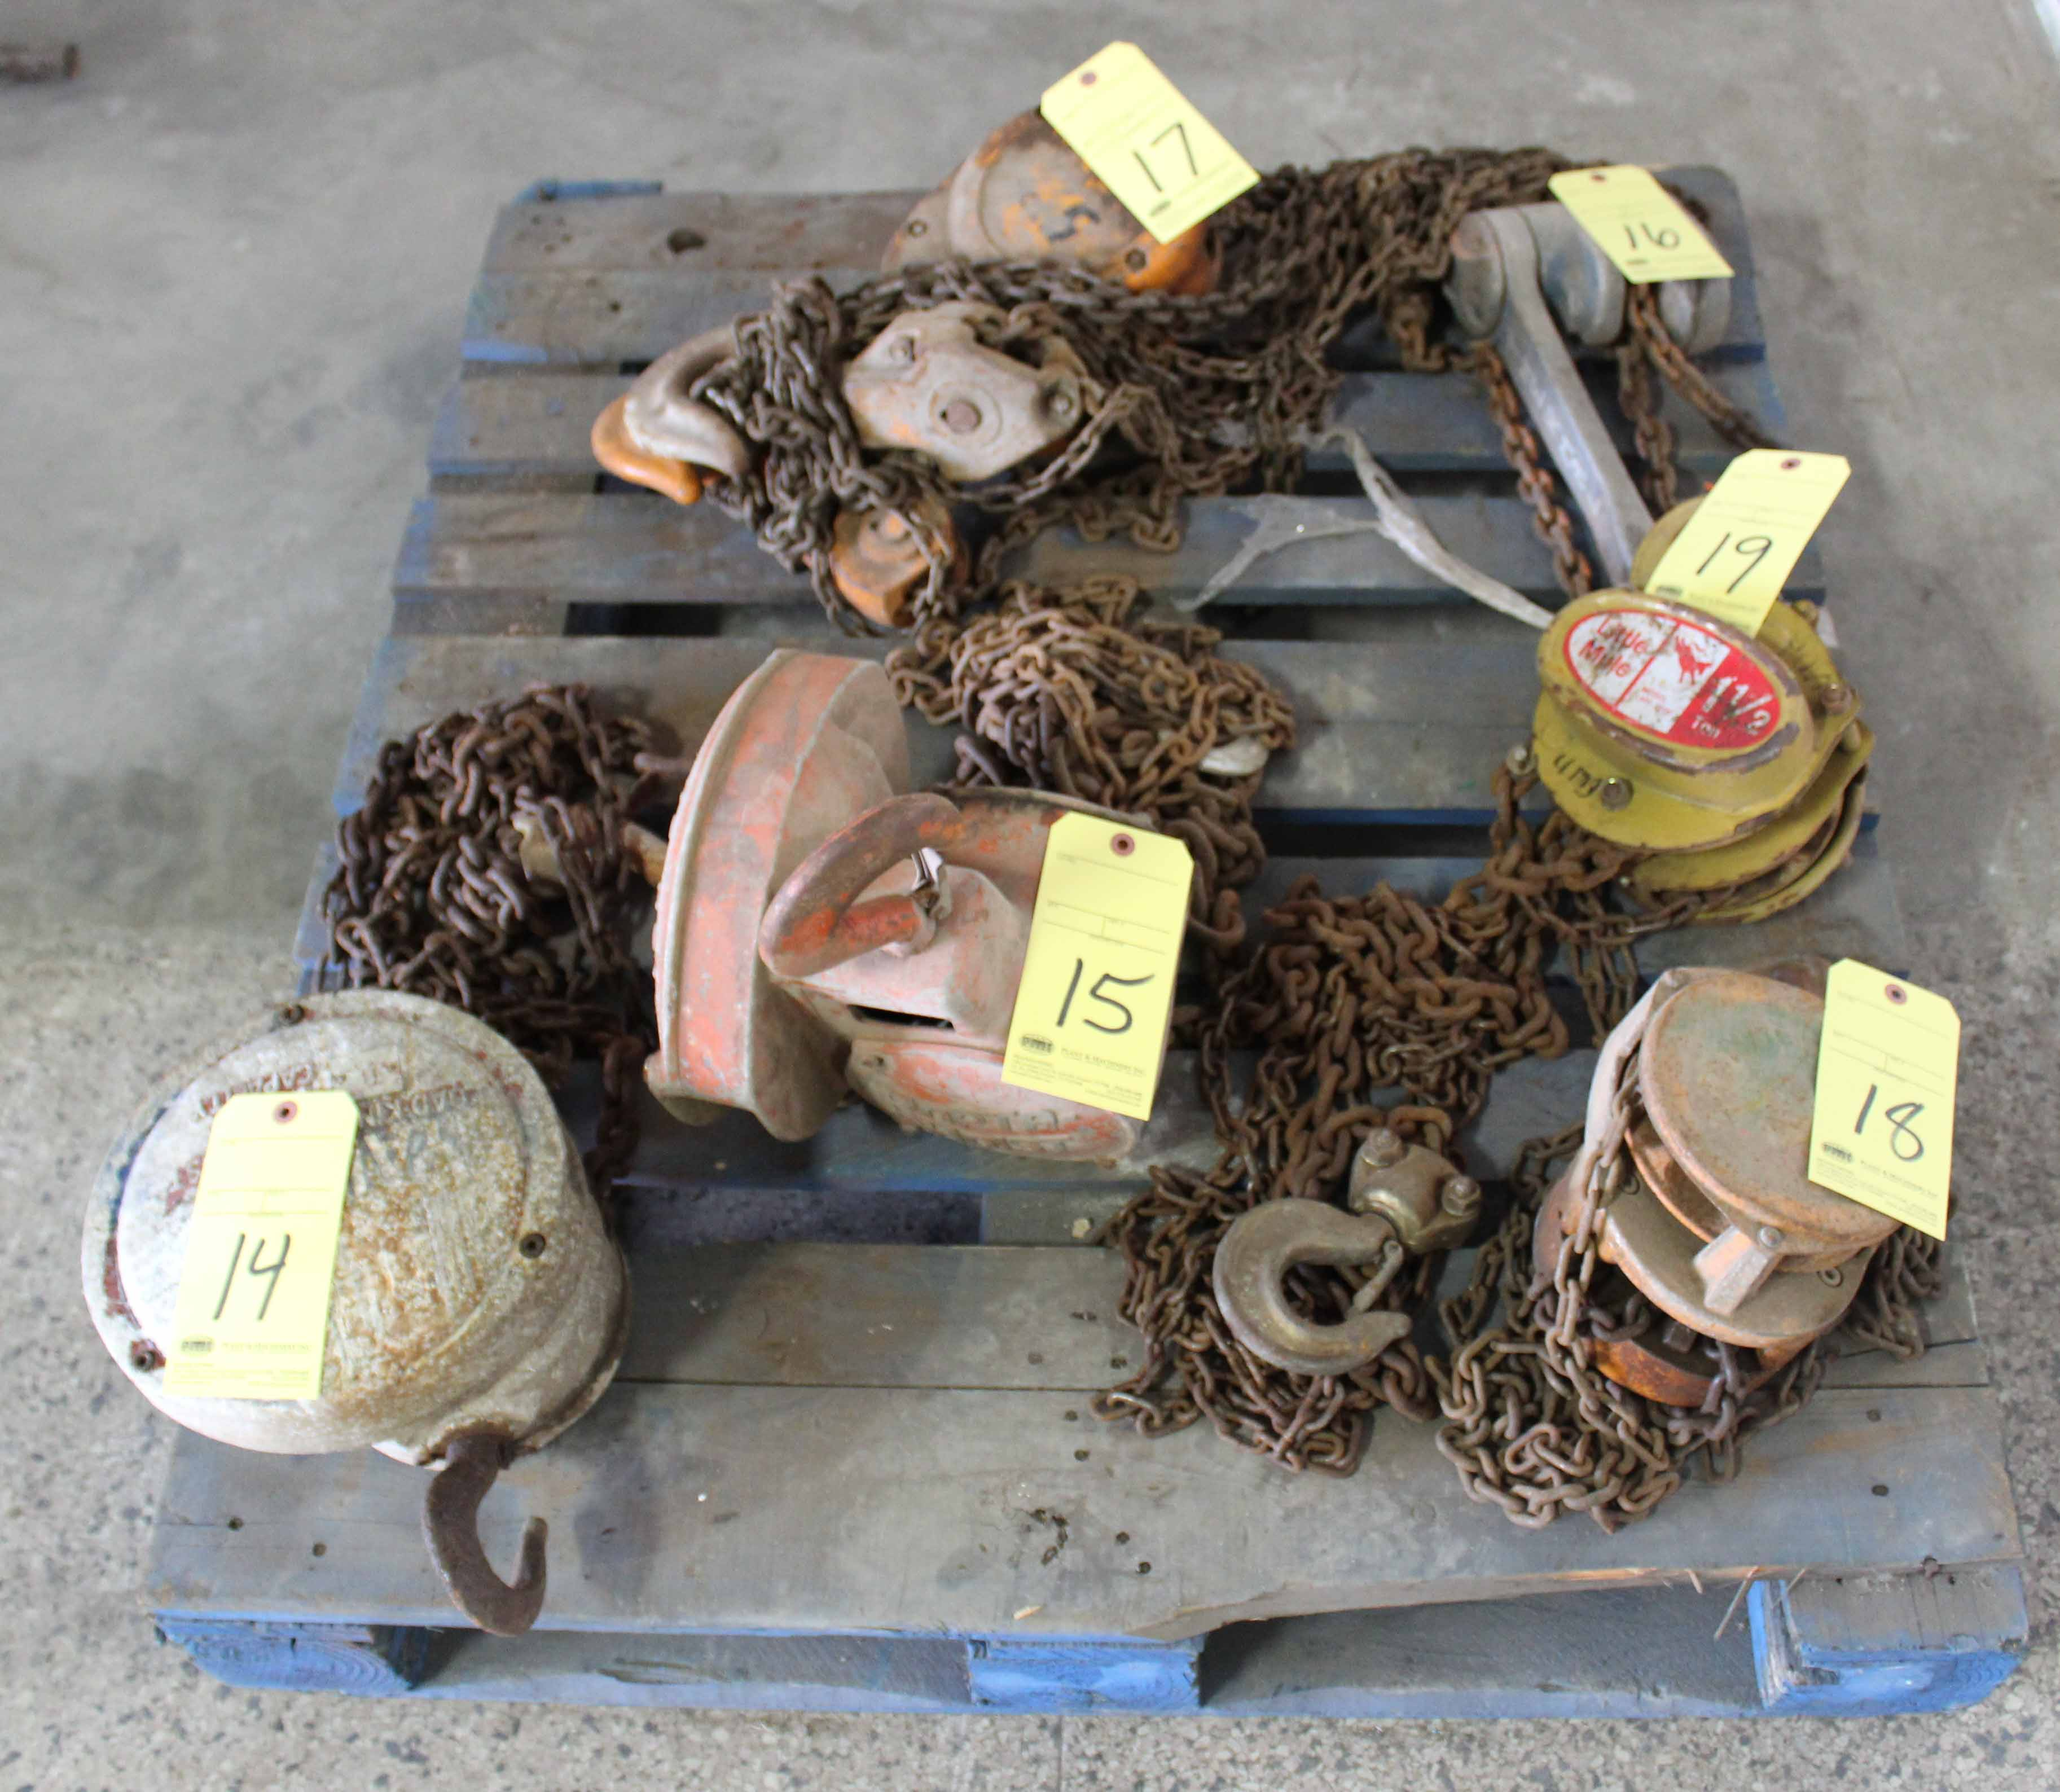 Lot 19 - CHAIN HOIST, LITTLE MULE 1-1/2 T. CAP. MDL. LMH3000